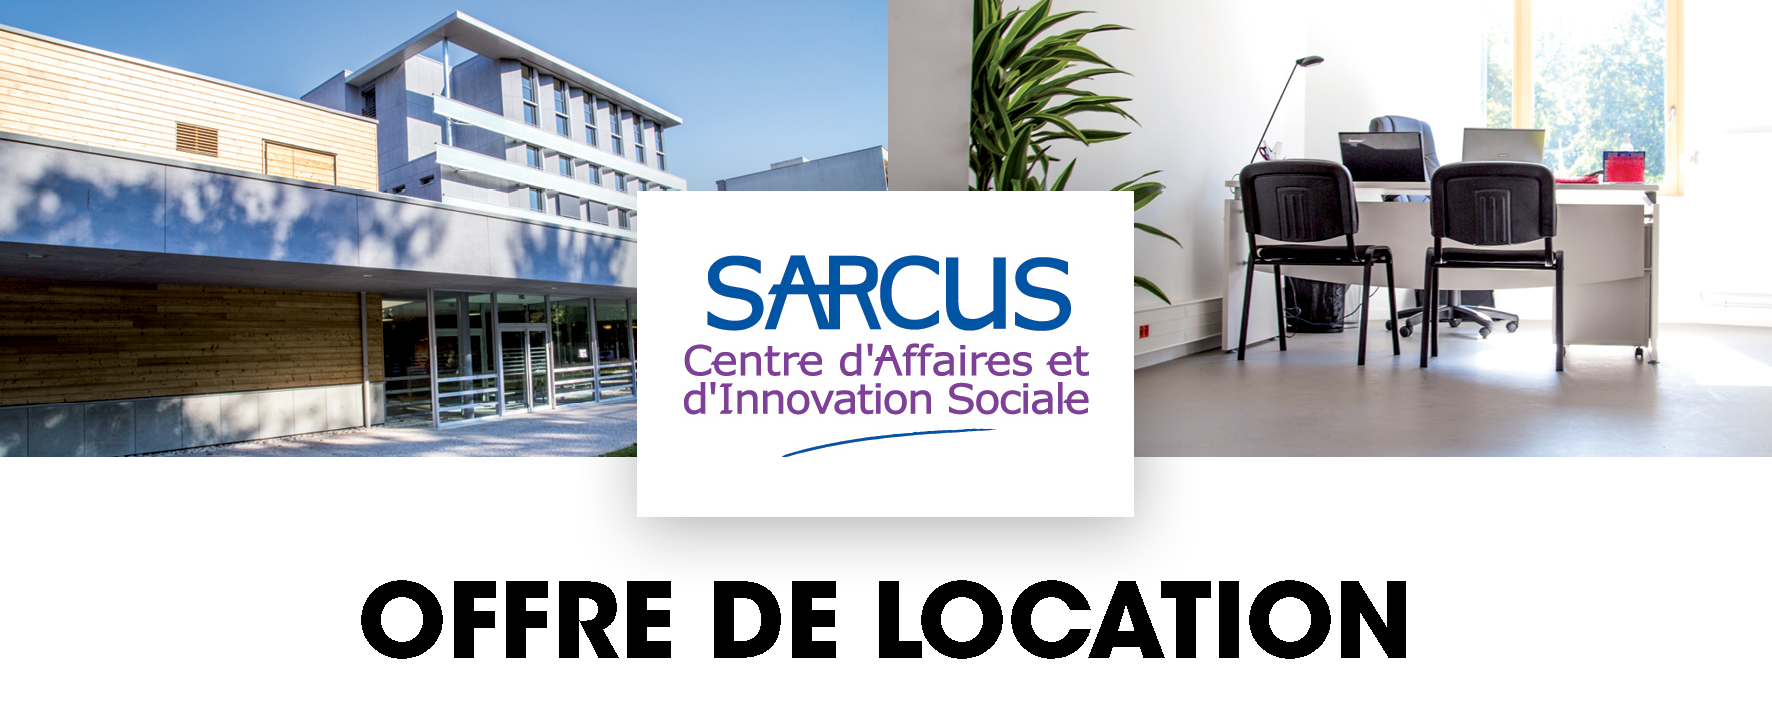 bureaux disponibles offre de location au sarcus sarcus le centre. Black Bedroom Furniture Sets. Home Design Ideas